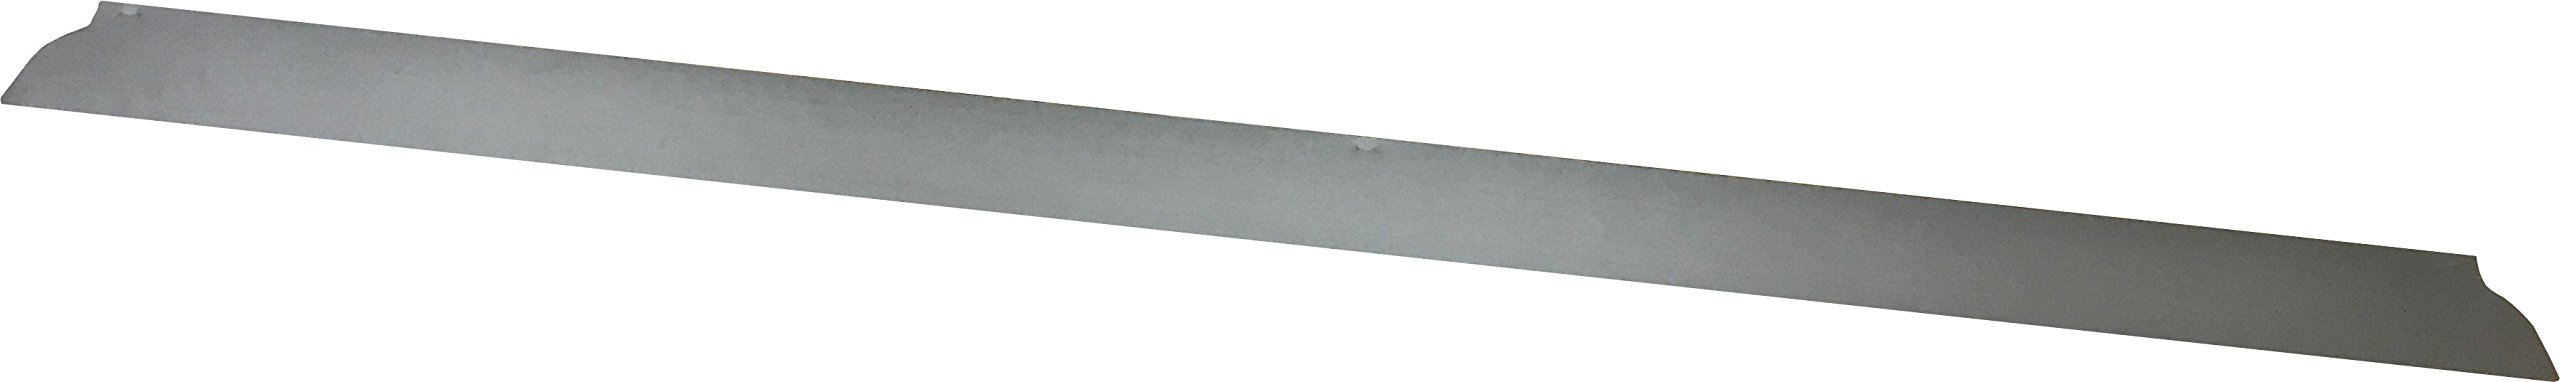 Tabor Tool 60'' x 0.5mm Finish Knife Replacement - BLADE ONLY